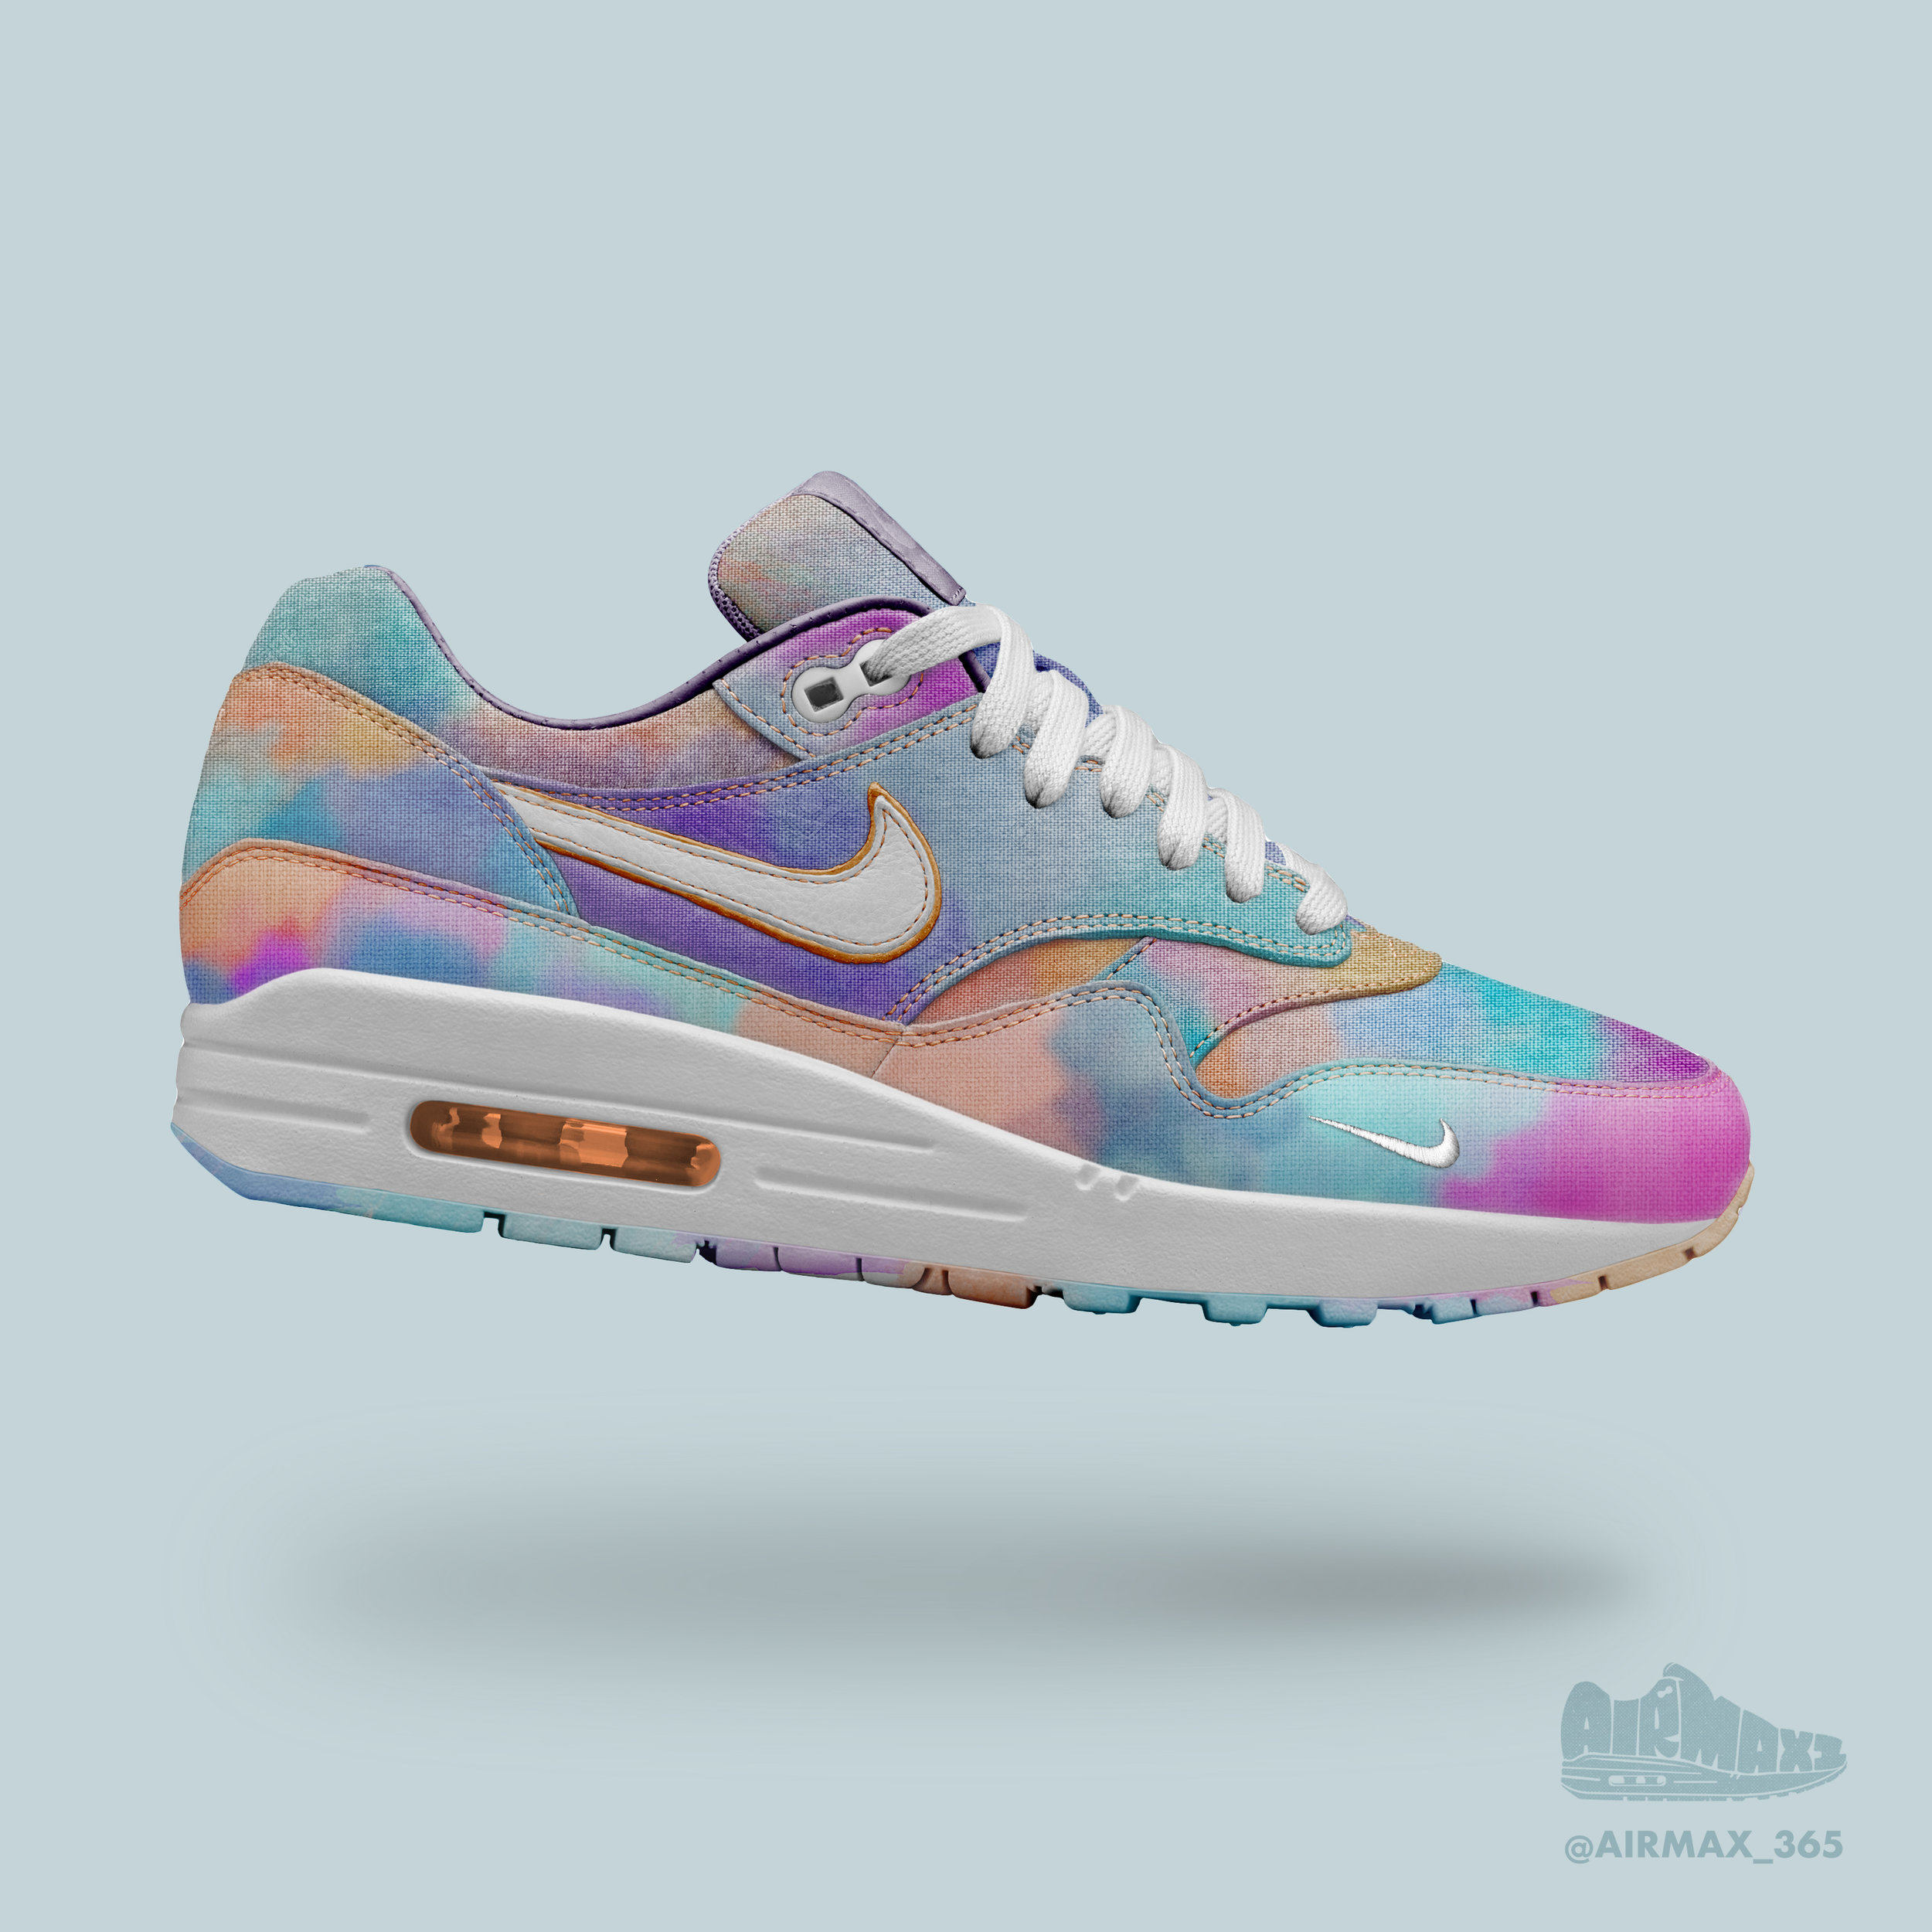 Day 256: Air Max 1 Easter Egg